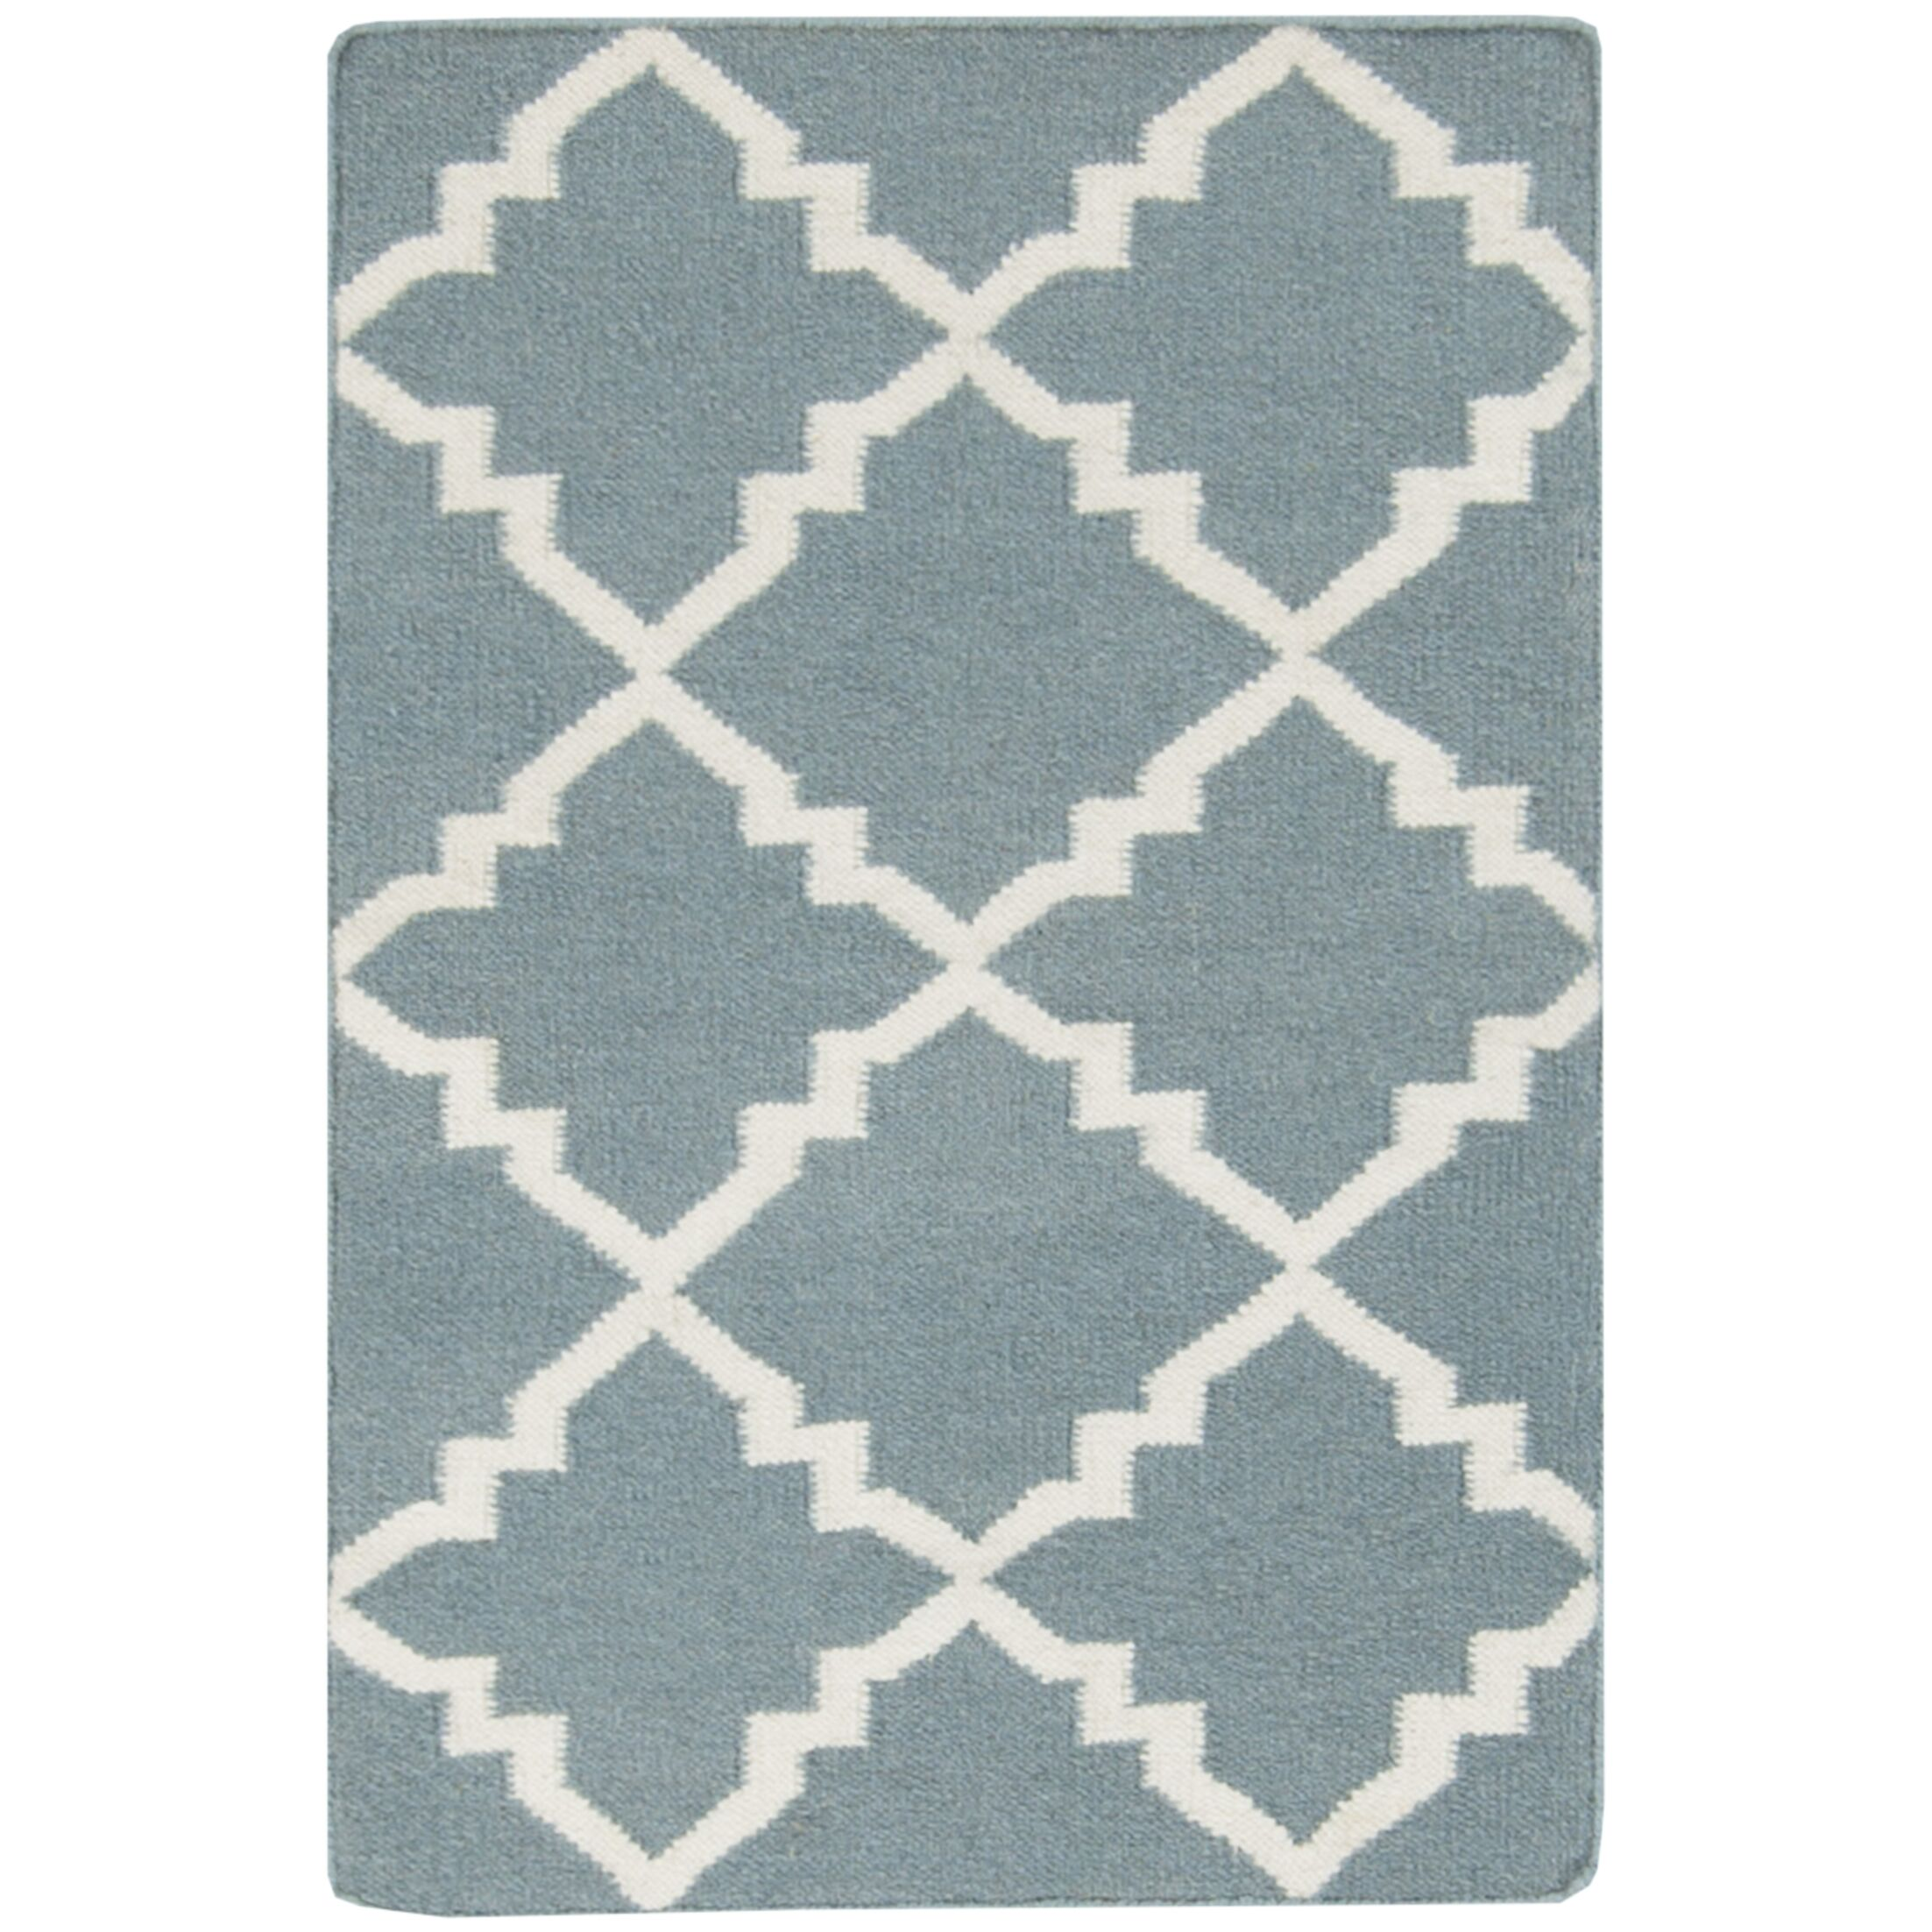 Darby Hand-Woven Blue Area Rug Rug Size: Rectangle 5' x 8'